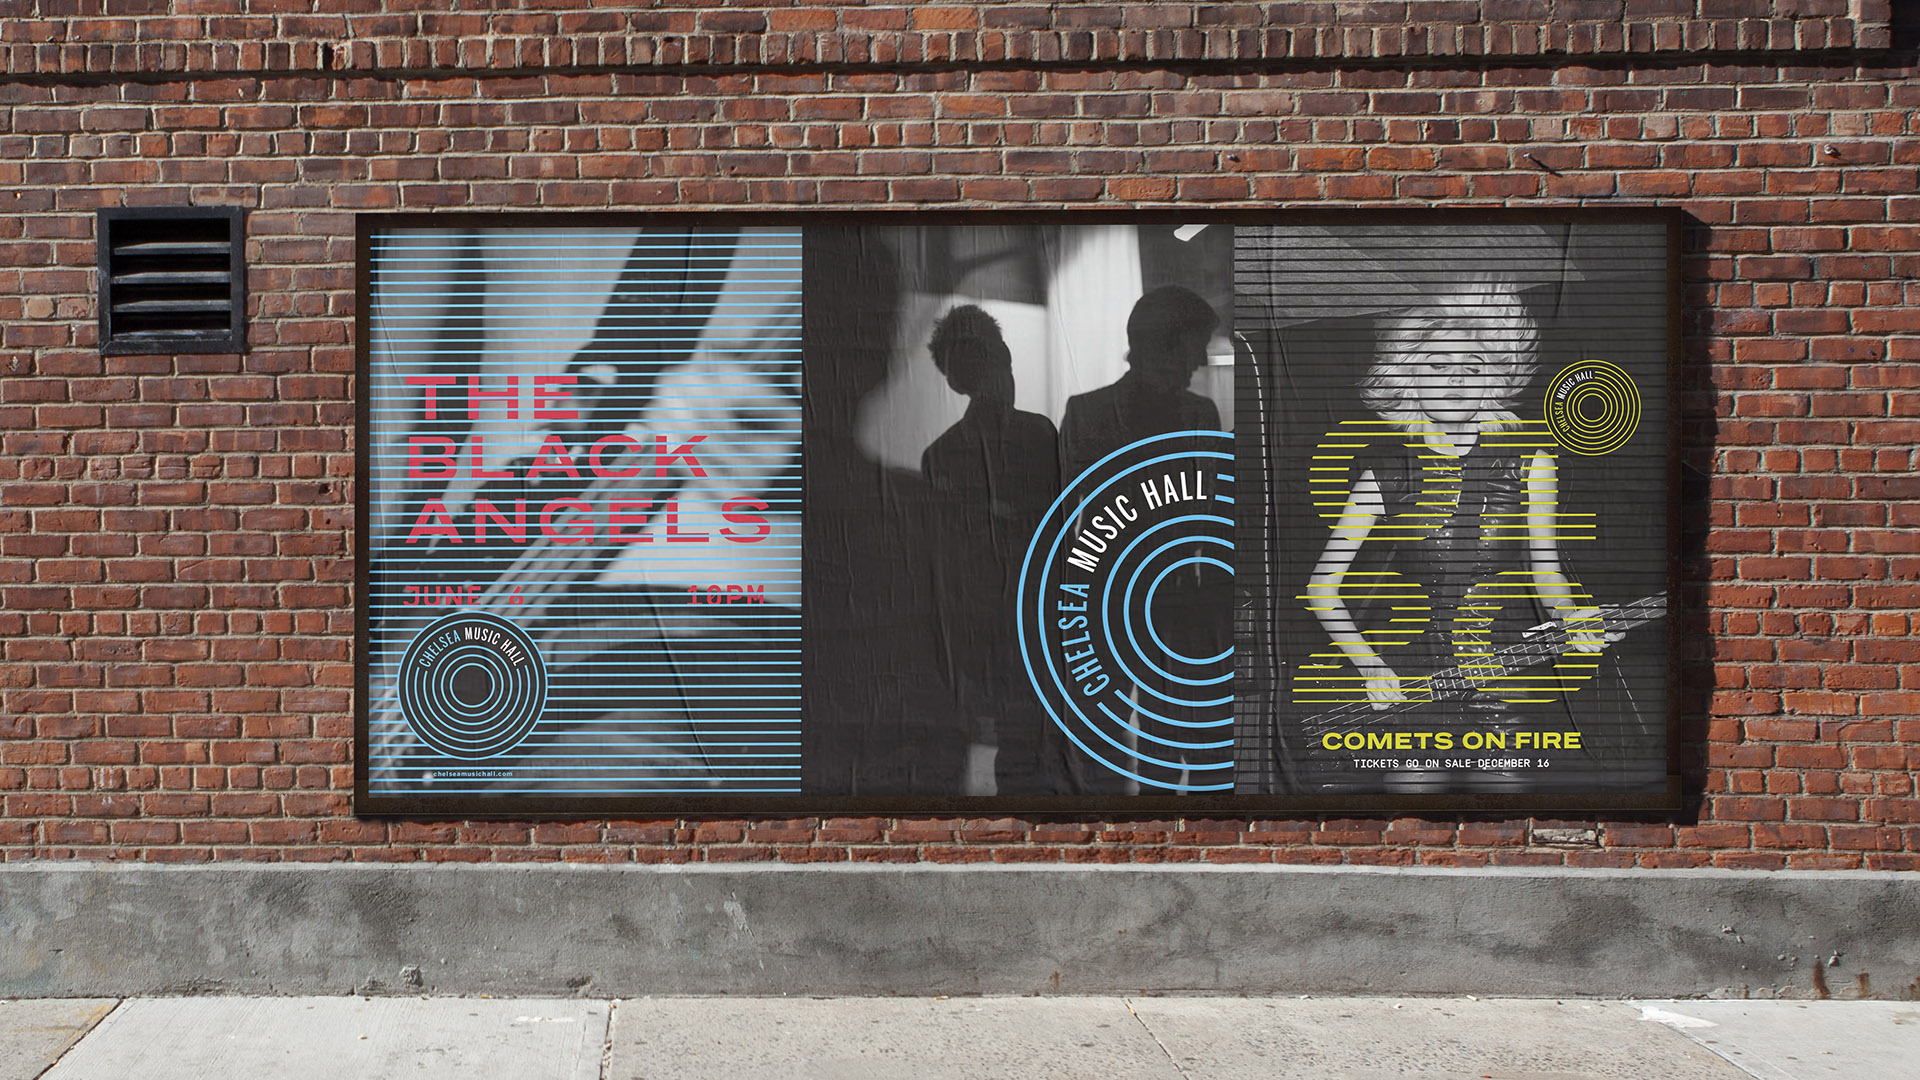 Chelsea Music Hall outdoor advertising